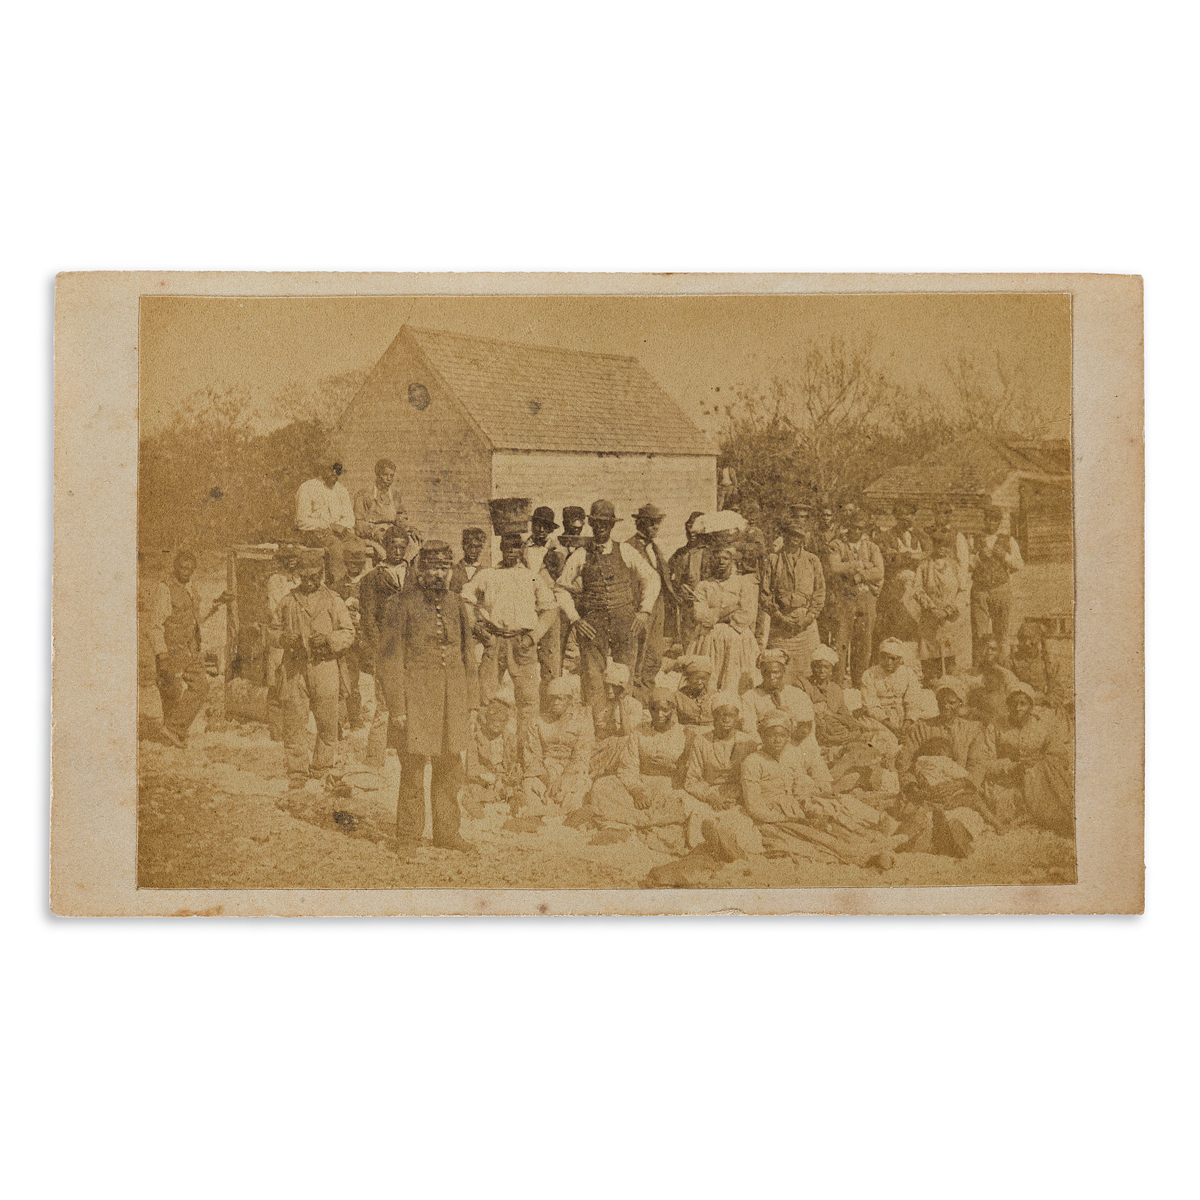 (CIVIL WAR--PHOTOGRAPHY.) Henry P. Moore. Group of 8 cartes-de-visite showing life in and near occupied Hilton Head.